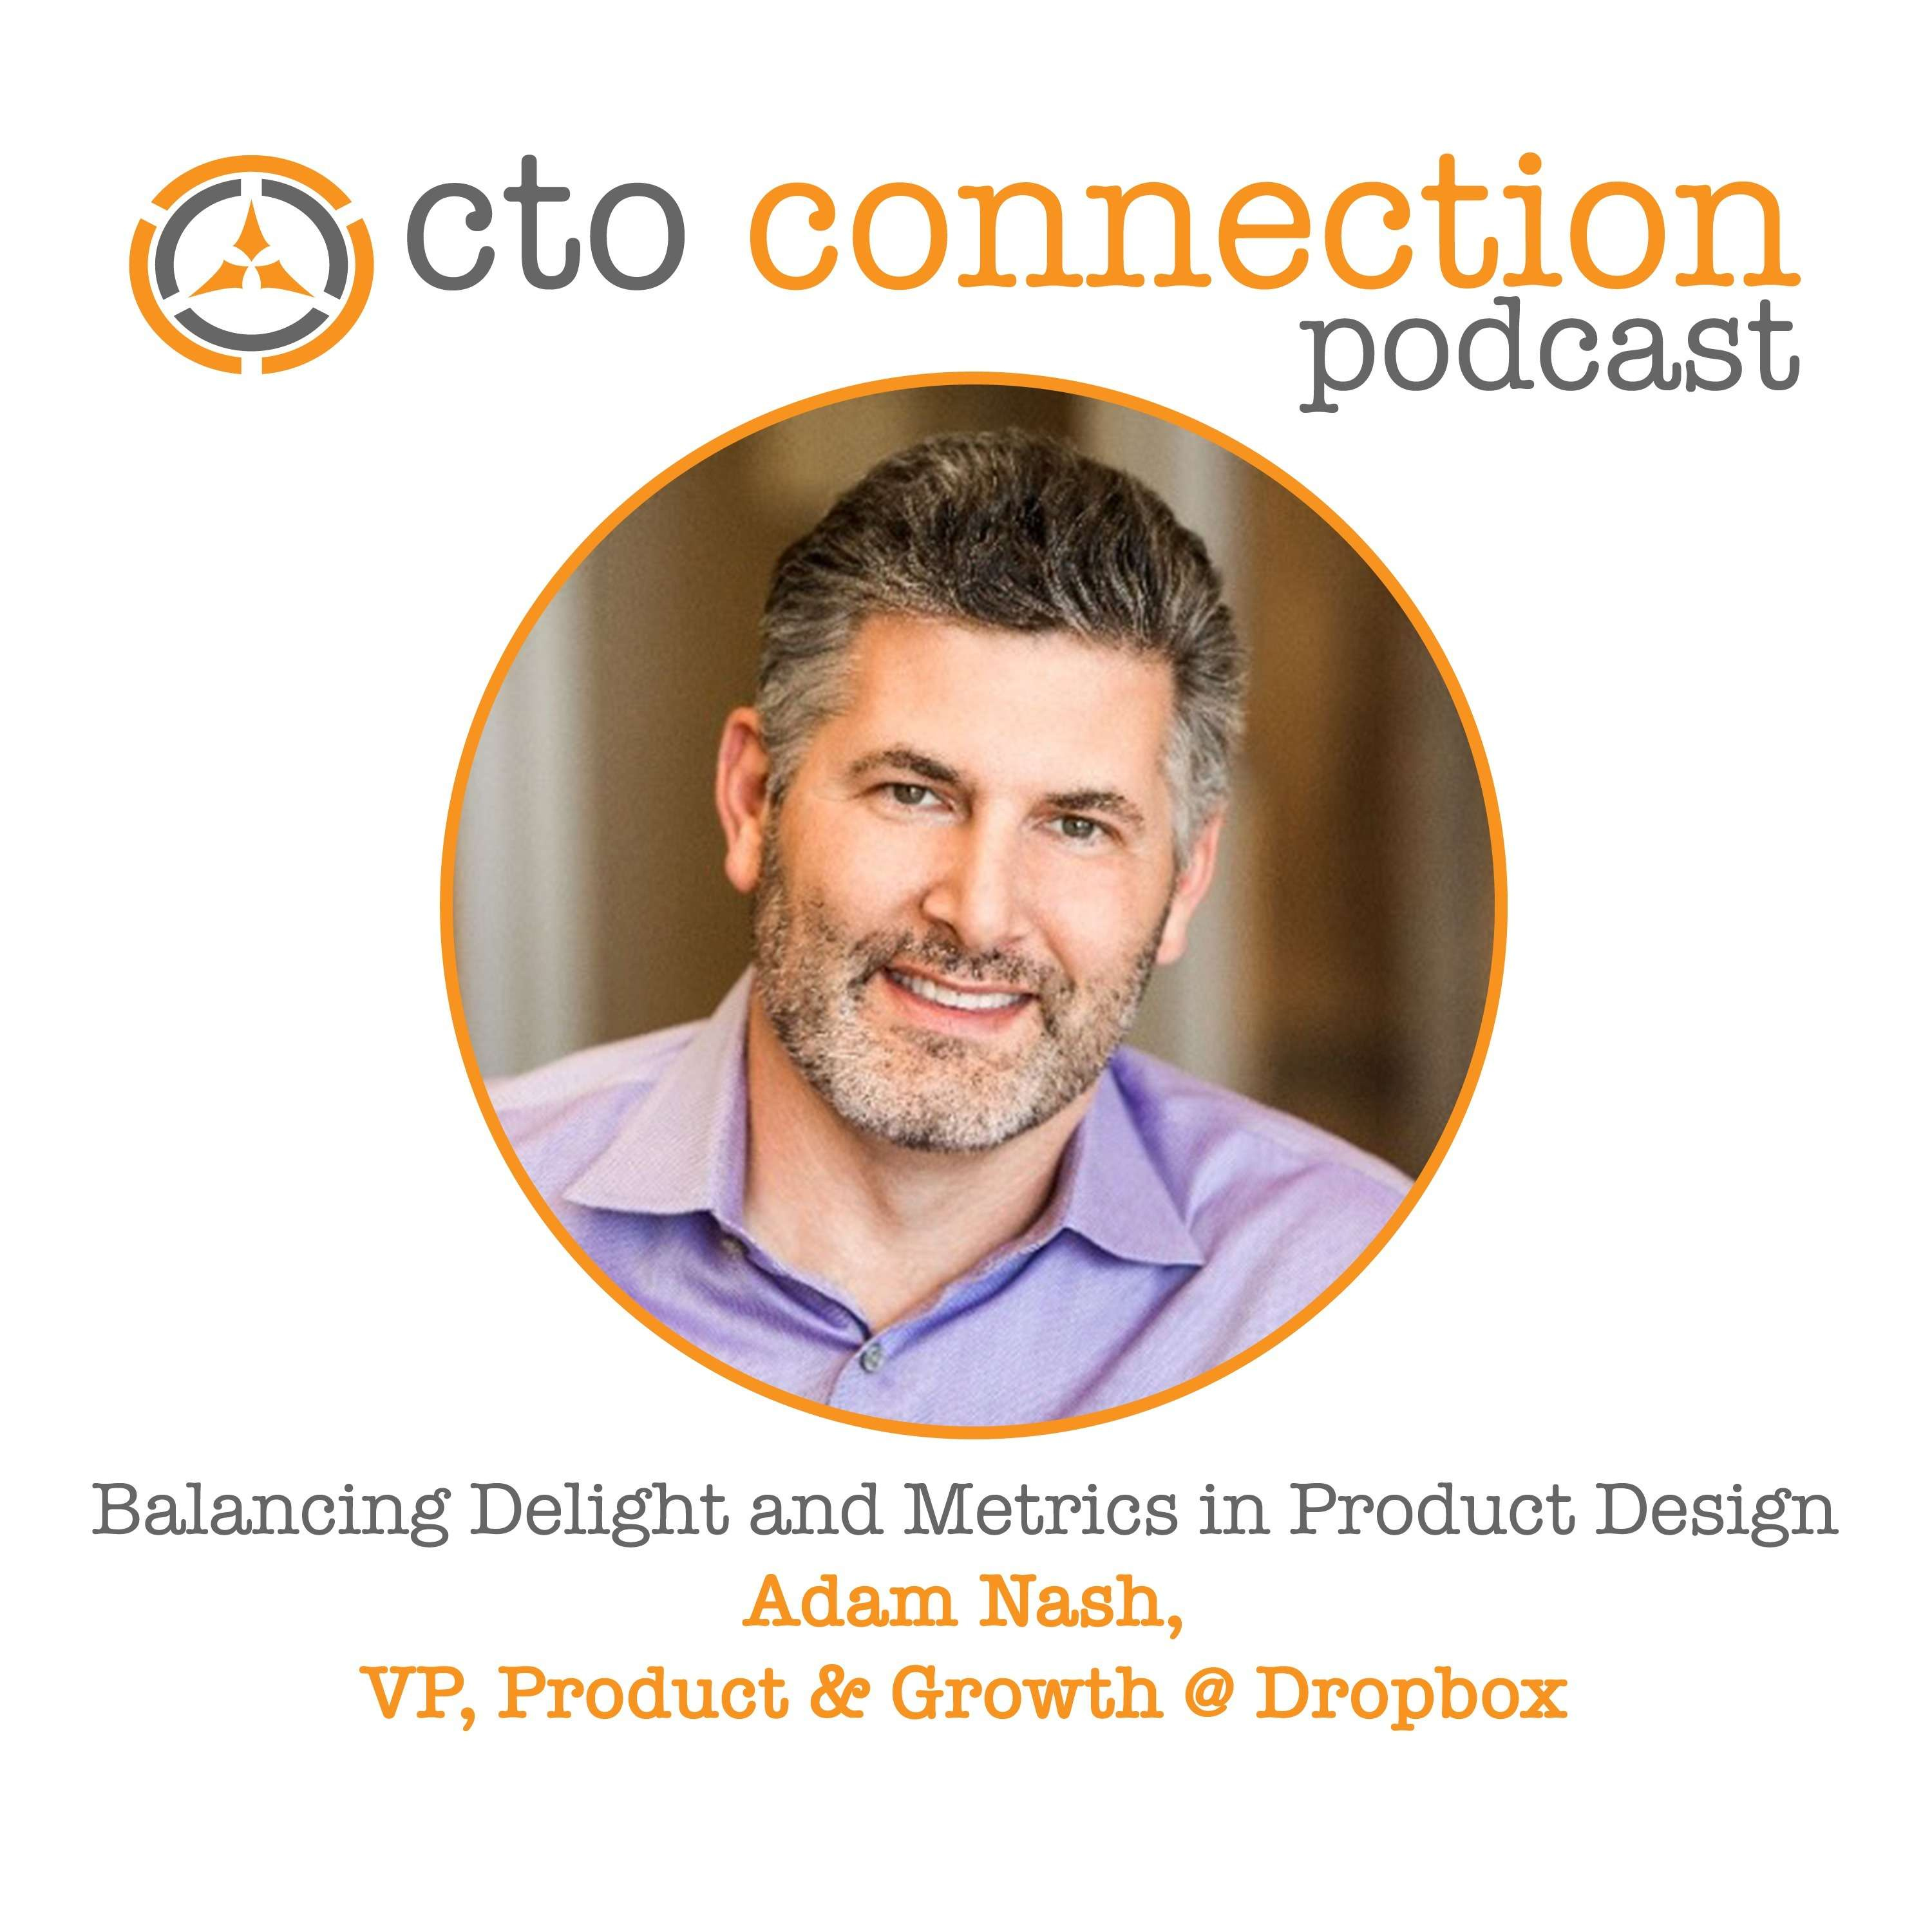 Balancing Delight and Metrics in Product Design with Adam Nash